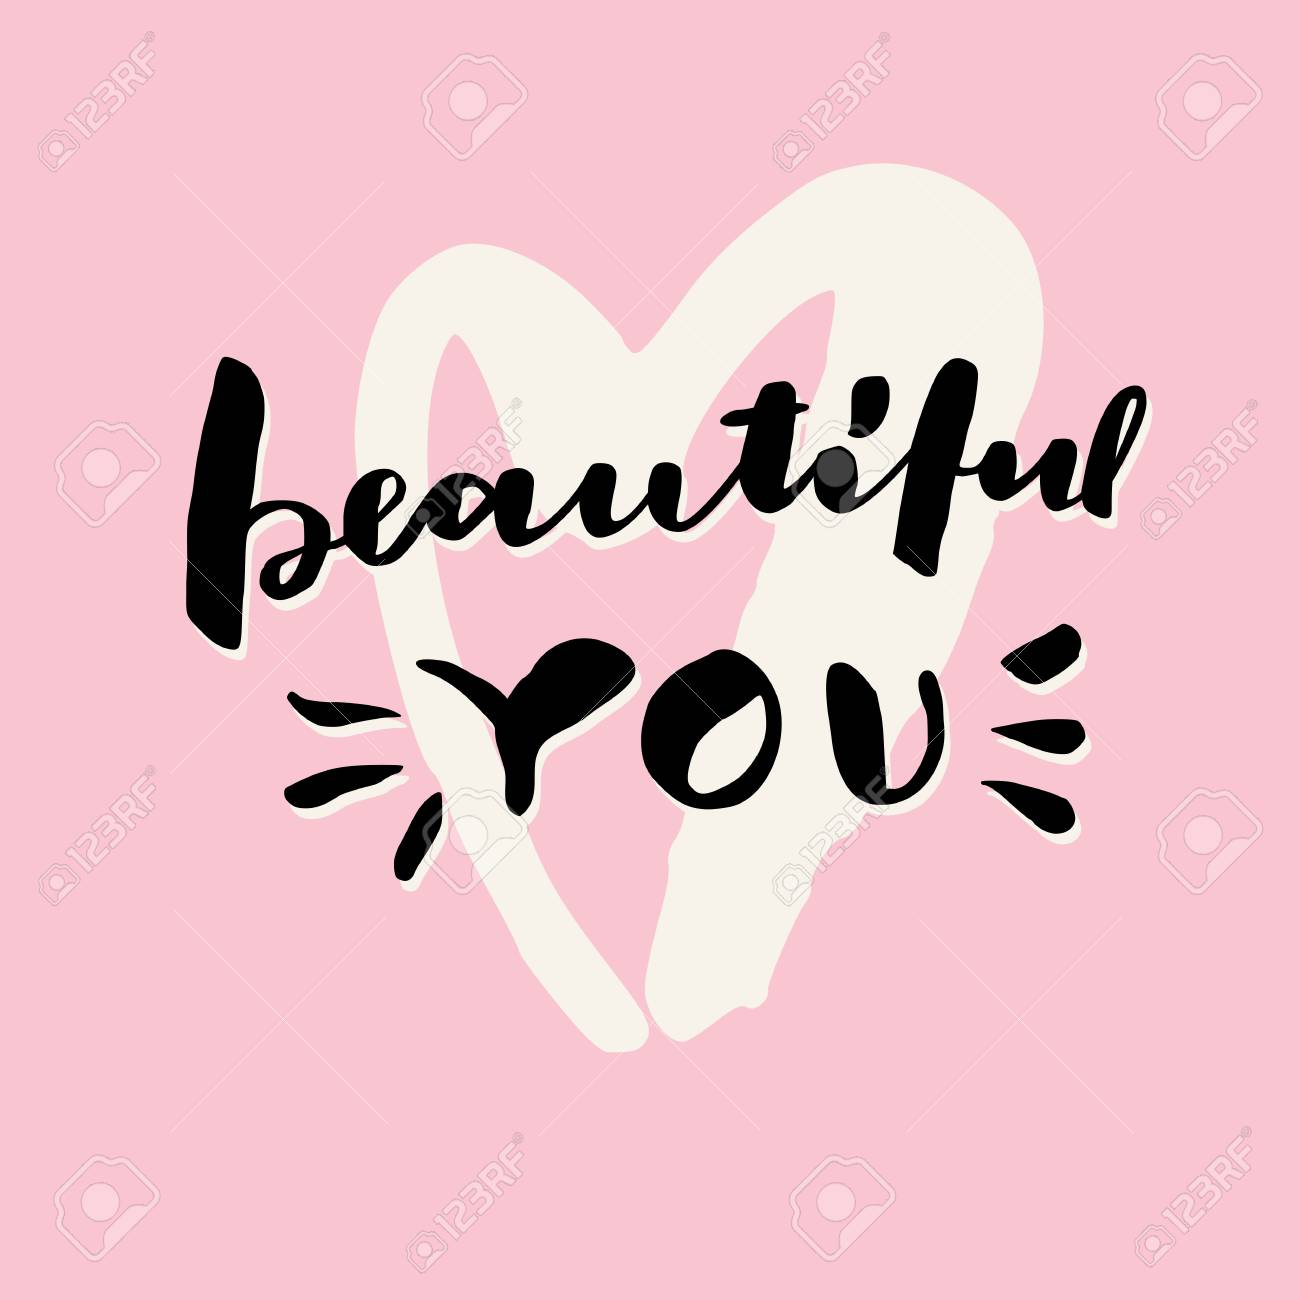 Beautiful you valentines day hand lettering greeting card valentines day hand lettering greeting card love message modern calligraphy on m4hsunfo